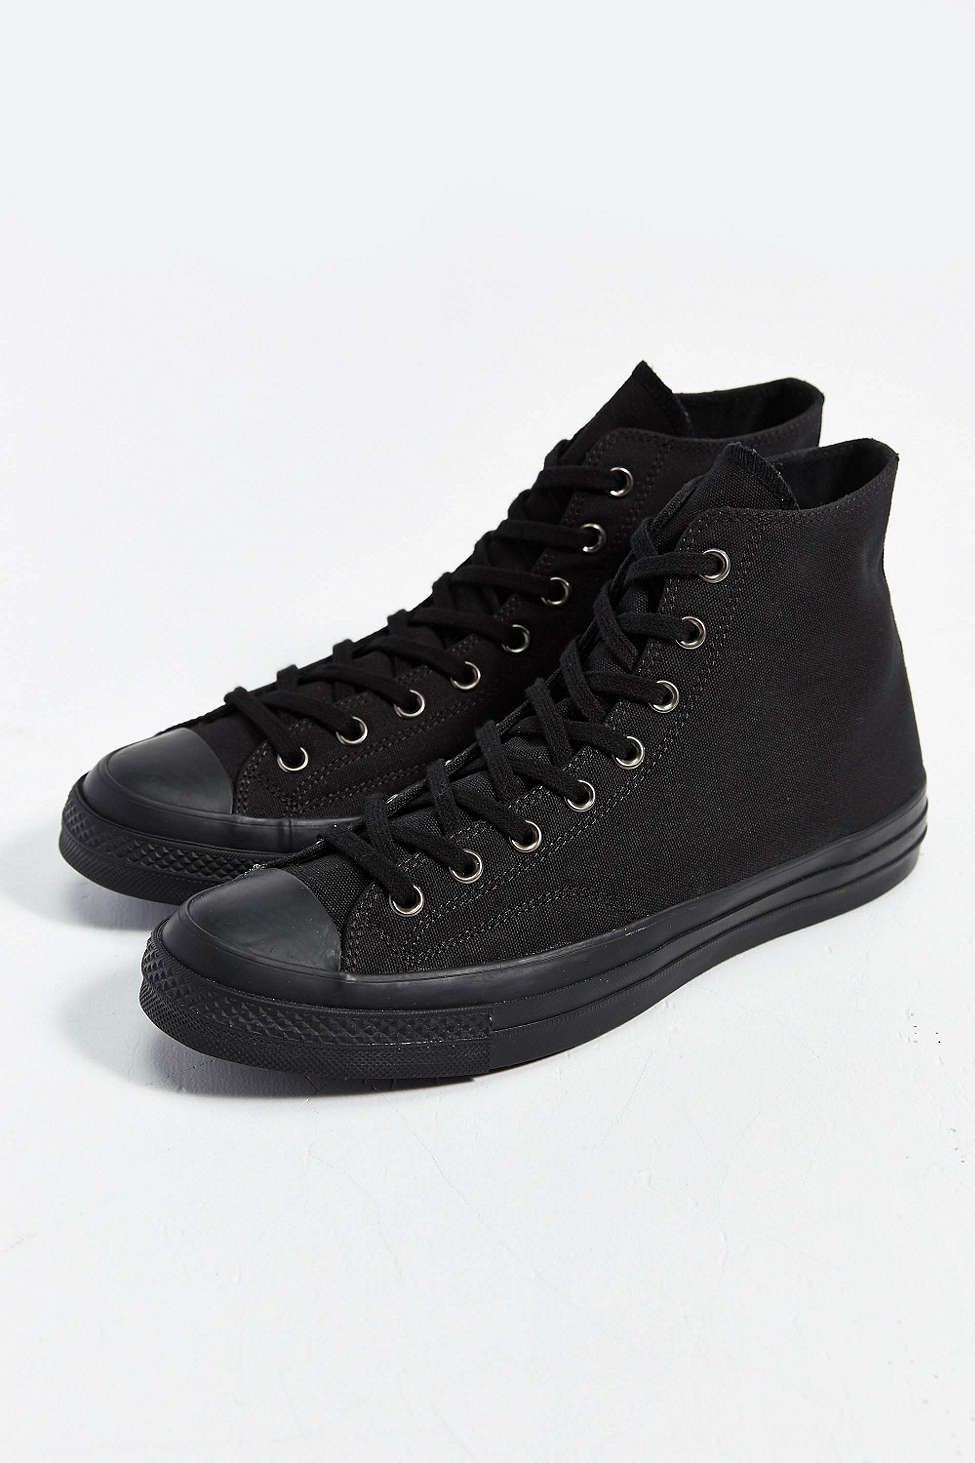 a1150b2c9802 Converse Chuck Taylor All Star 70s Mono High-Top Sneaker in 2019 ...